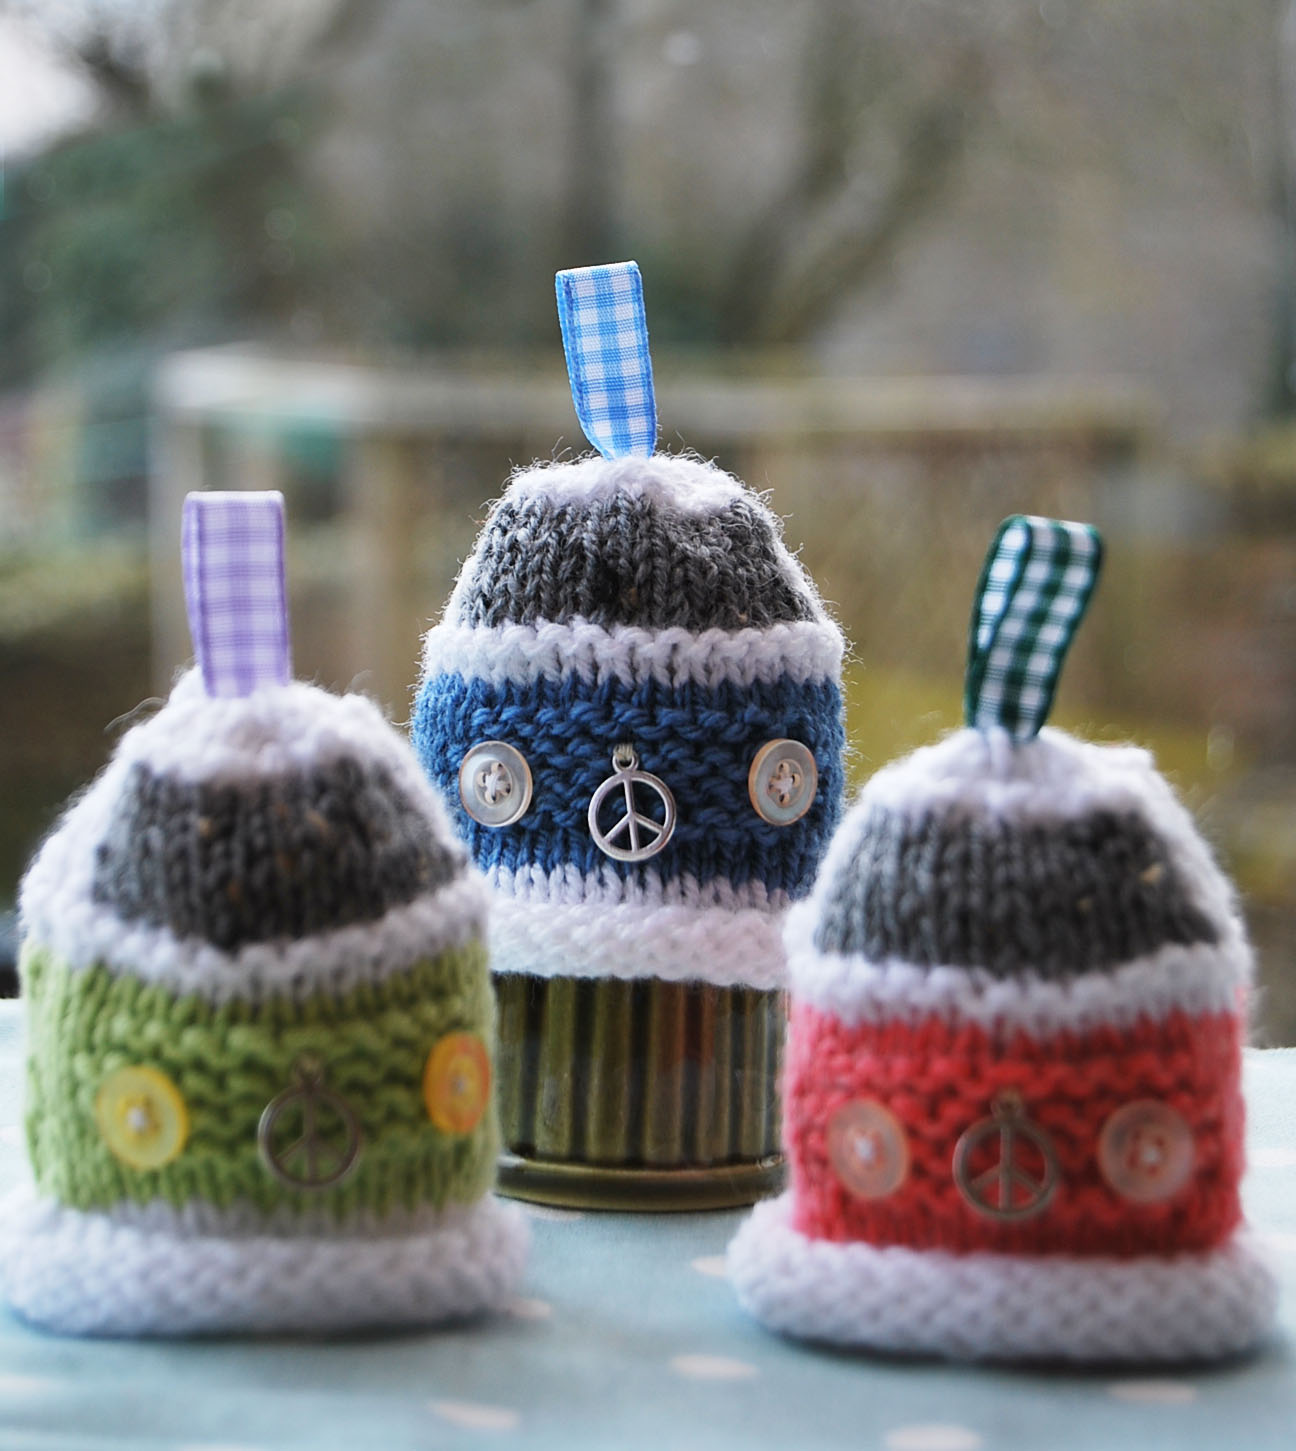 Snug in a Dub: Knit a Bay Campervan Egg Cosy for Easter